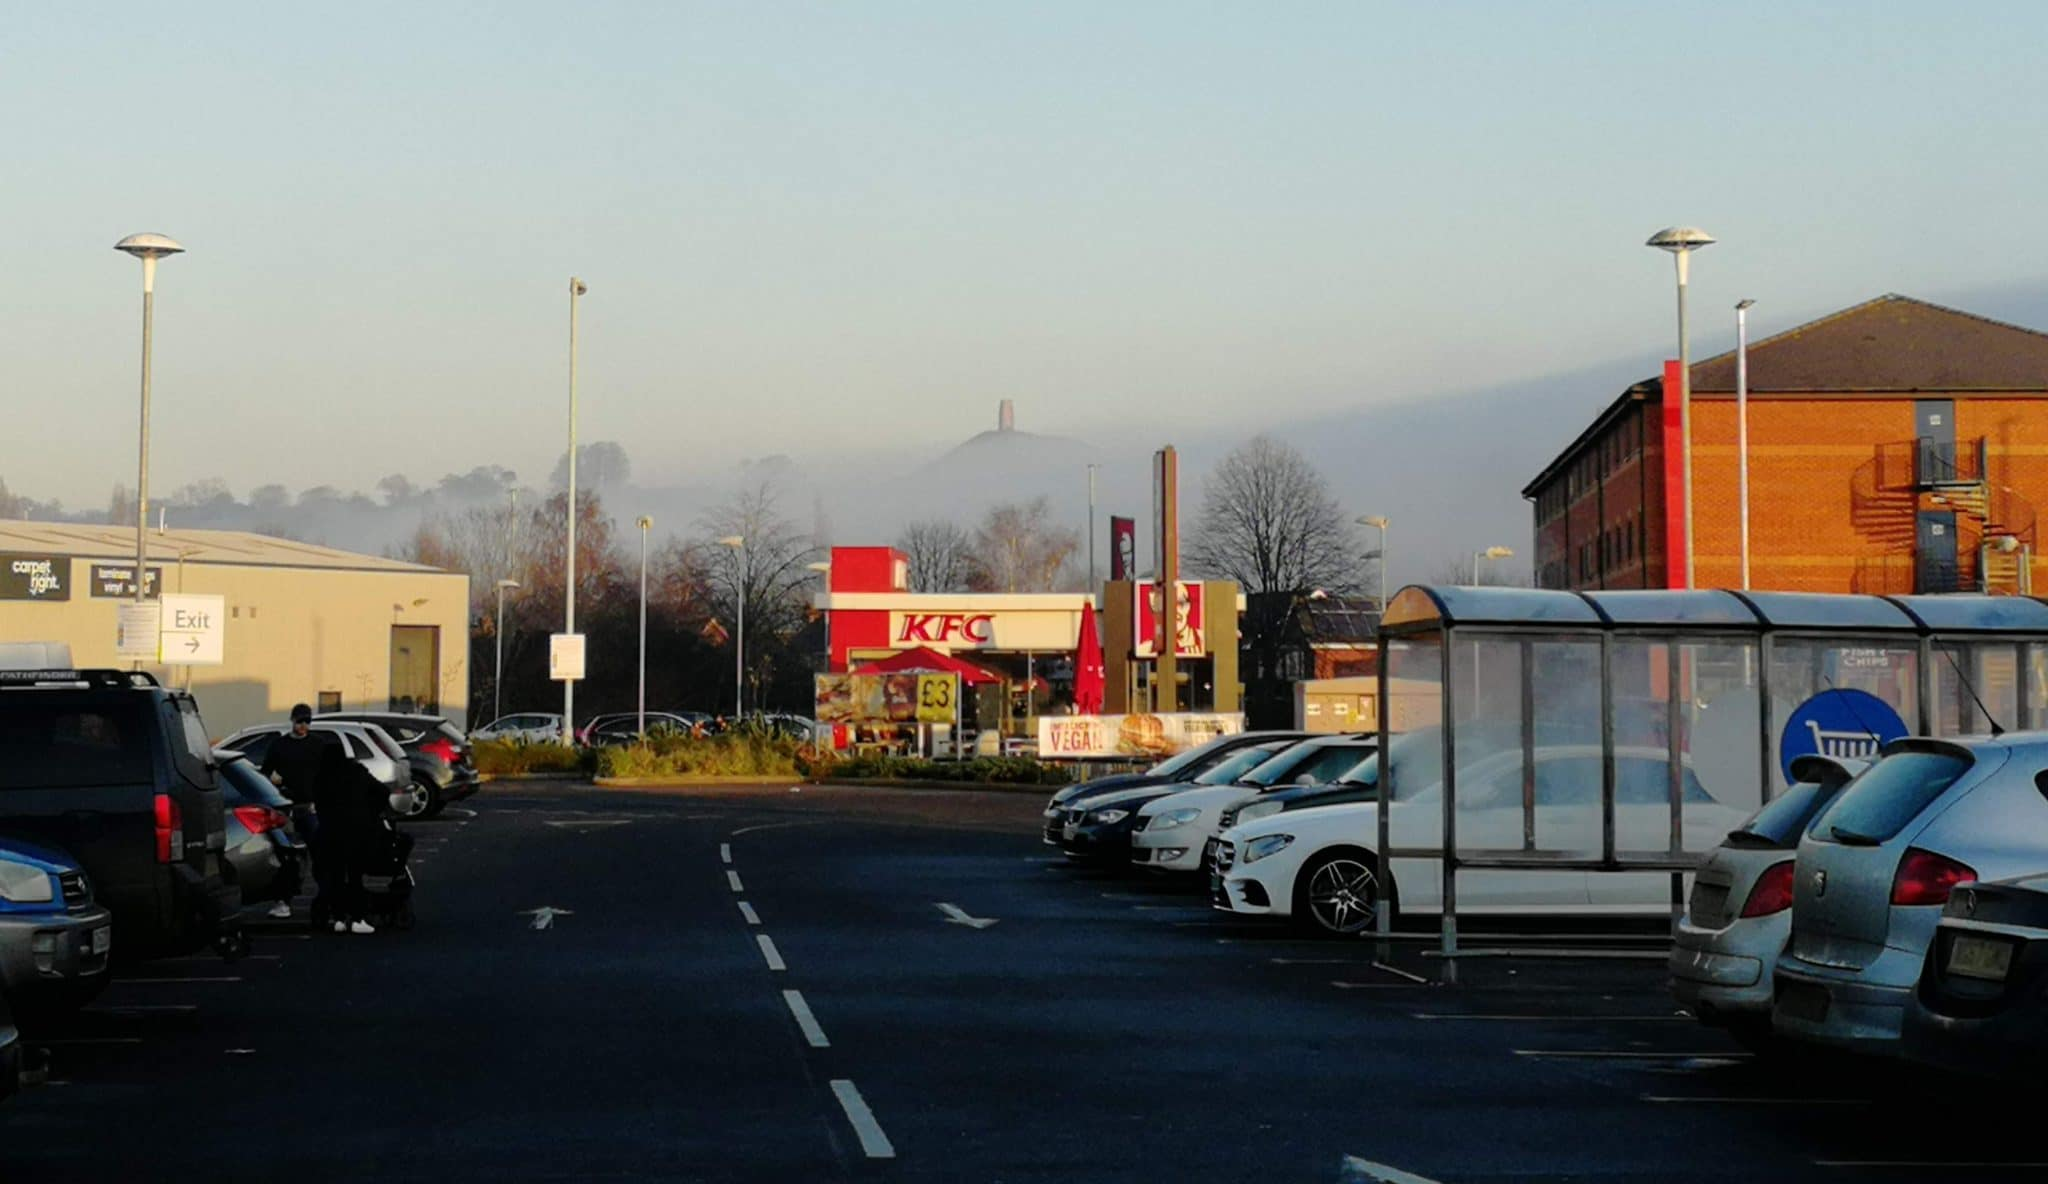 Glastonbury Tor in the Mist from the Industrial estate